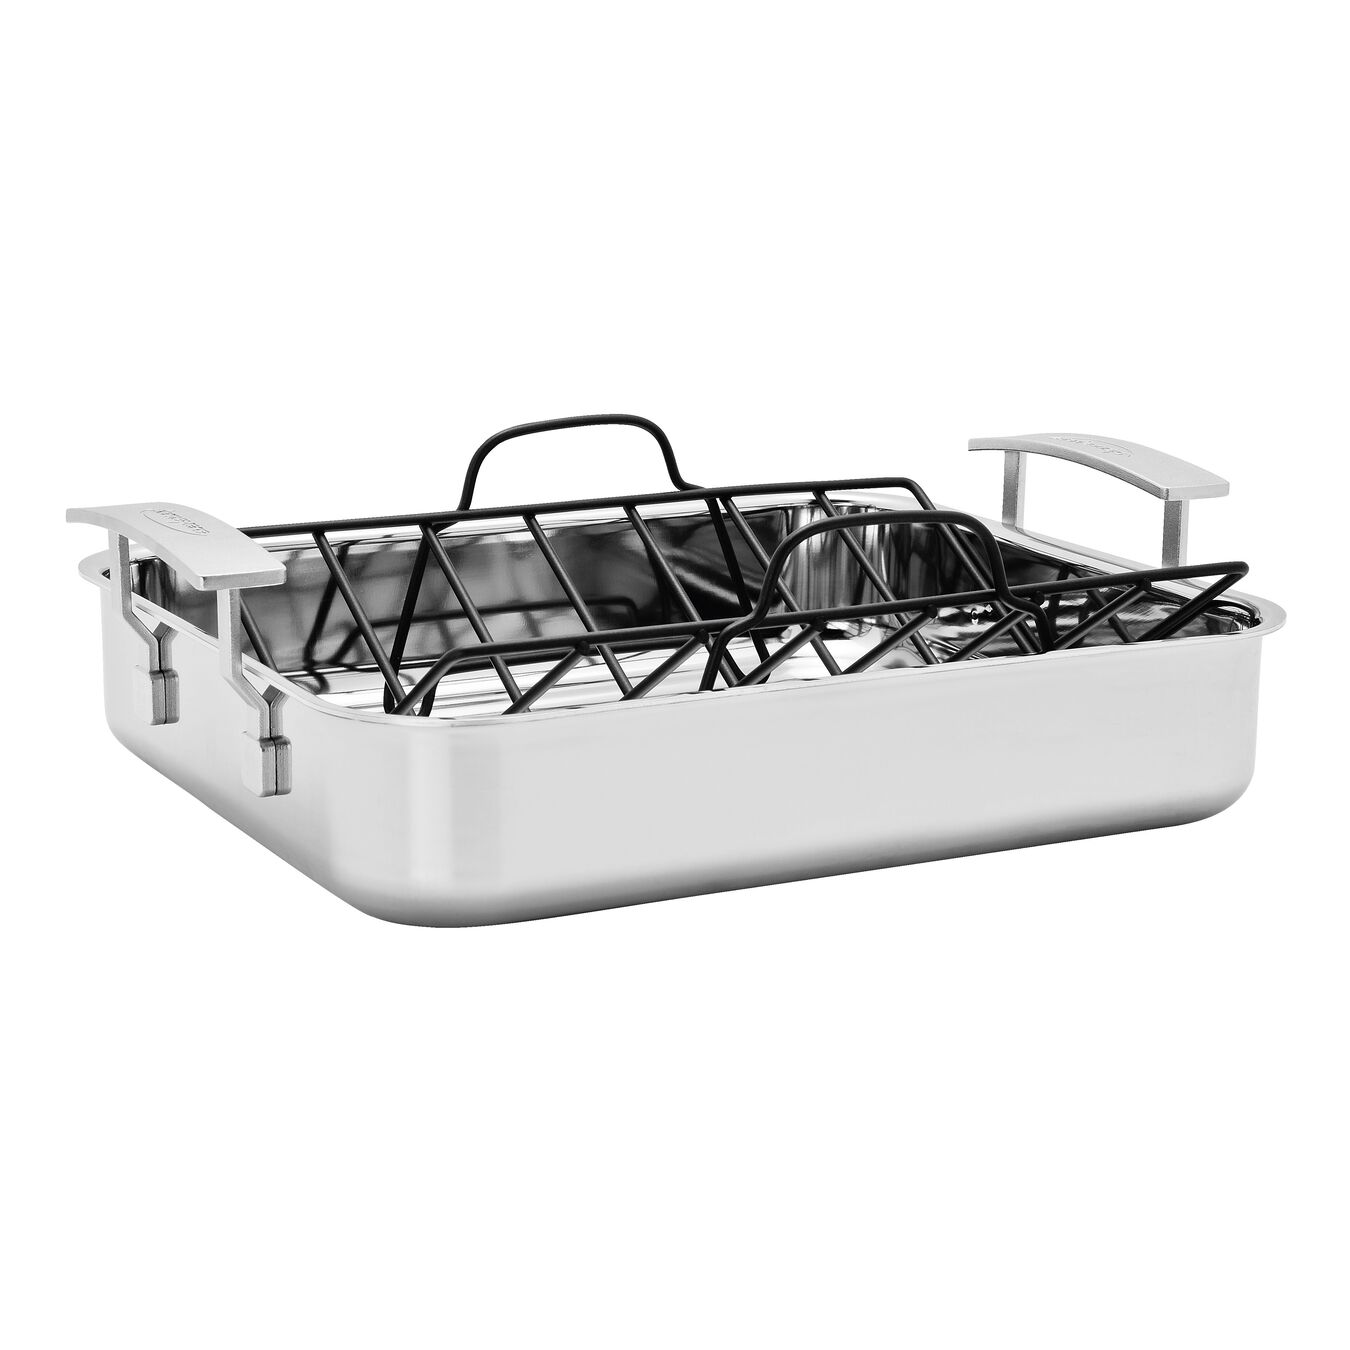 18/10 STAINLESS STEEL ROASTING PAN WITH RACK,,large 1